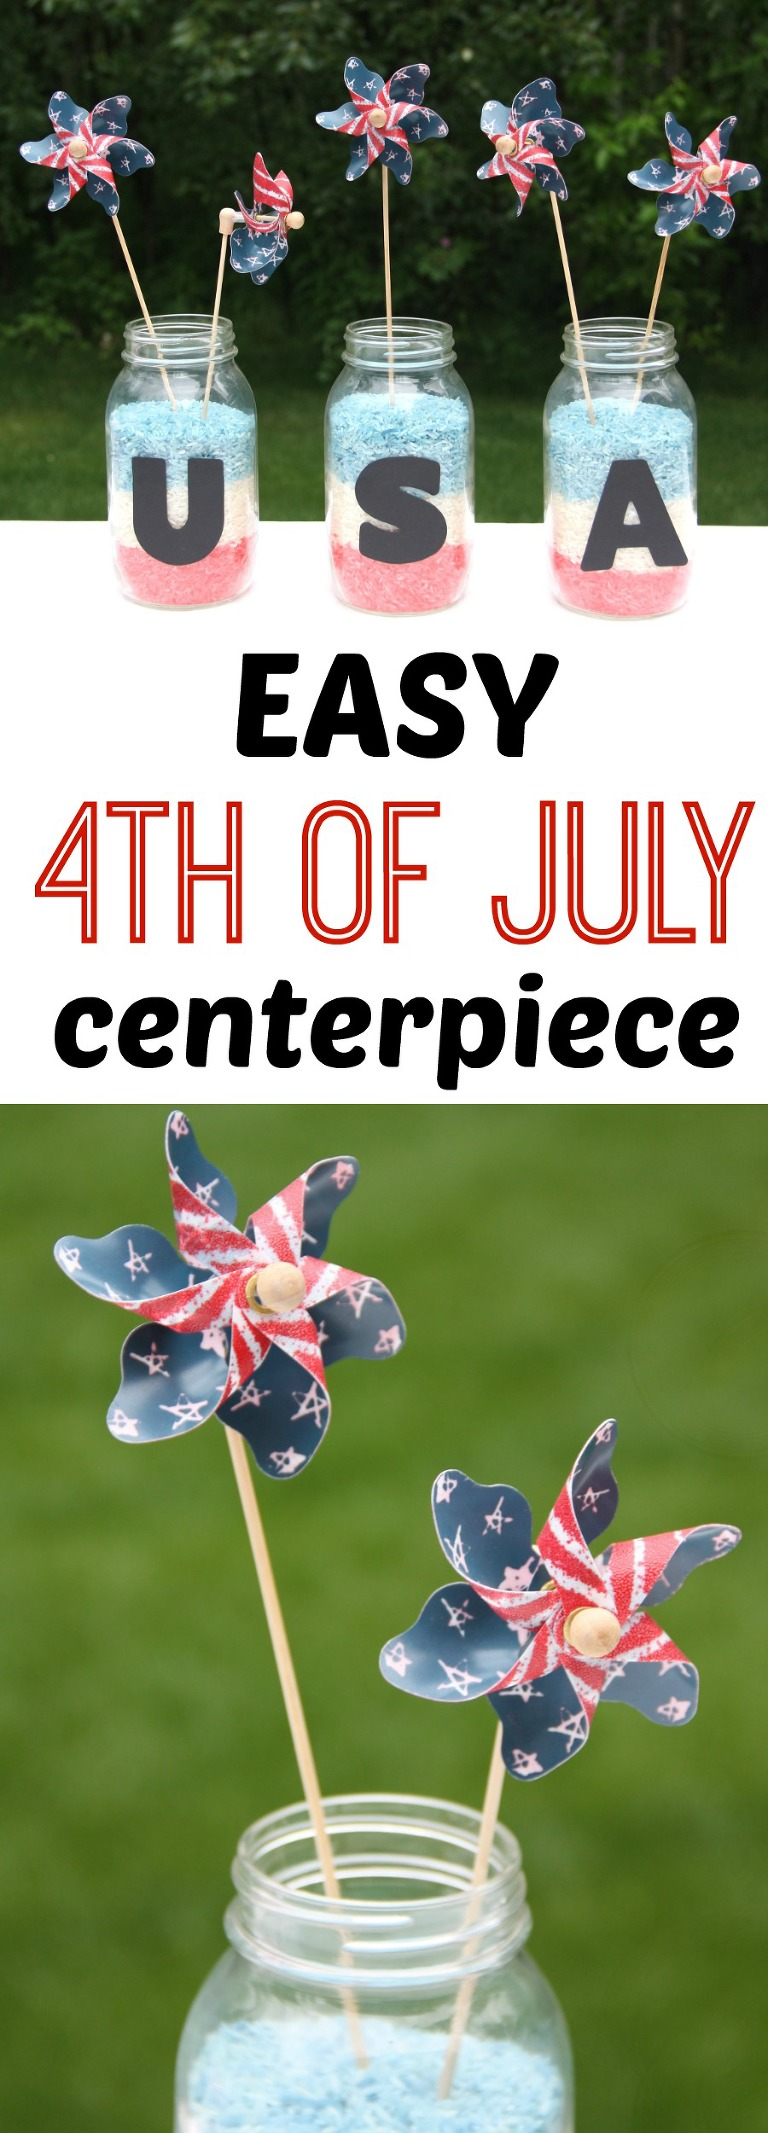 easy fourth of july centerpiece